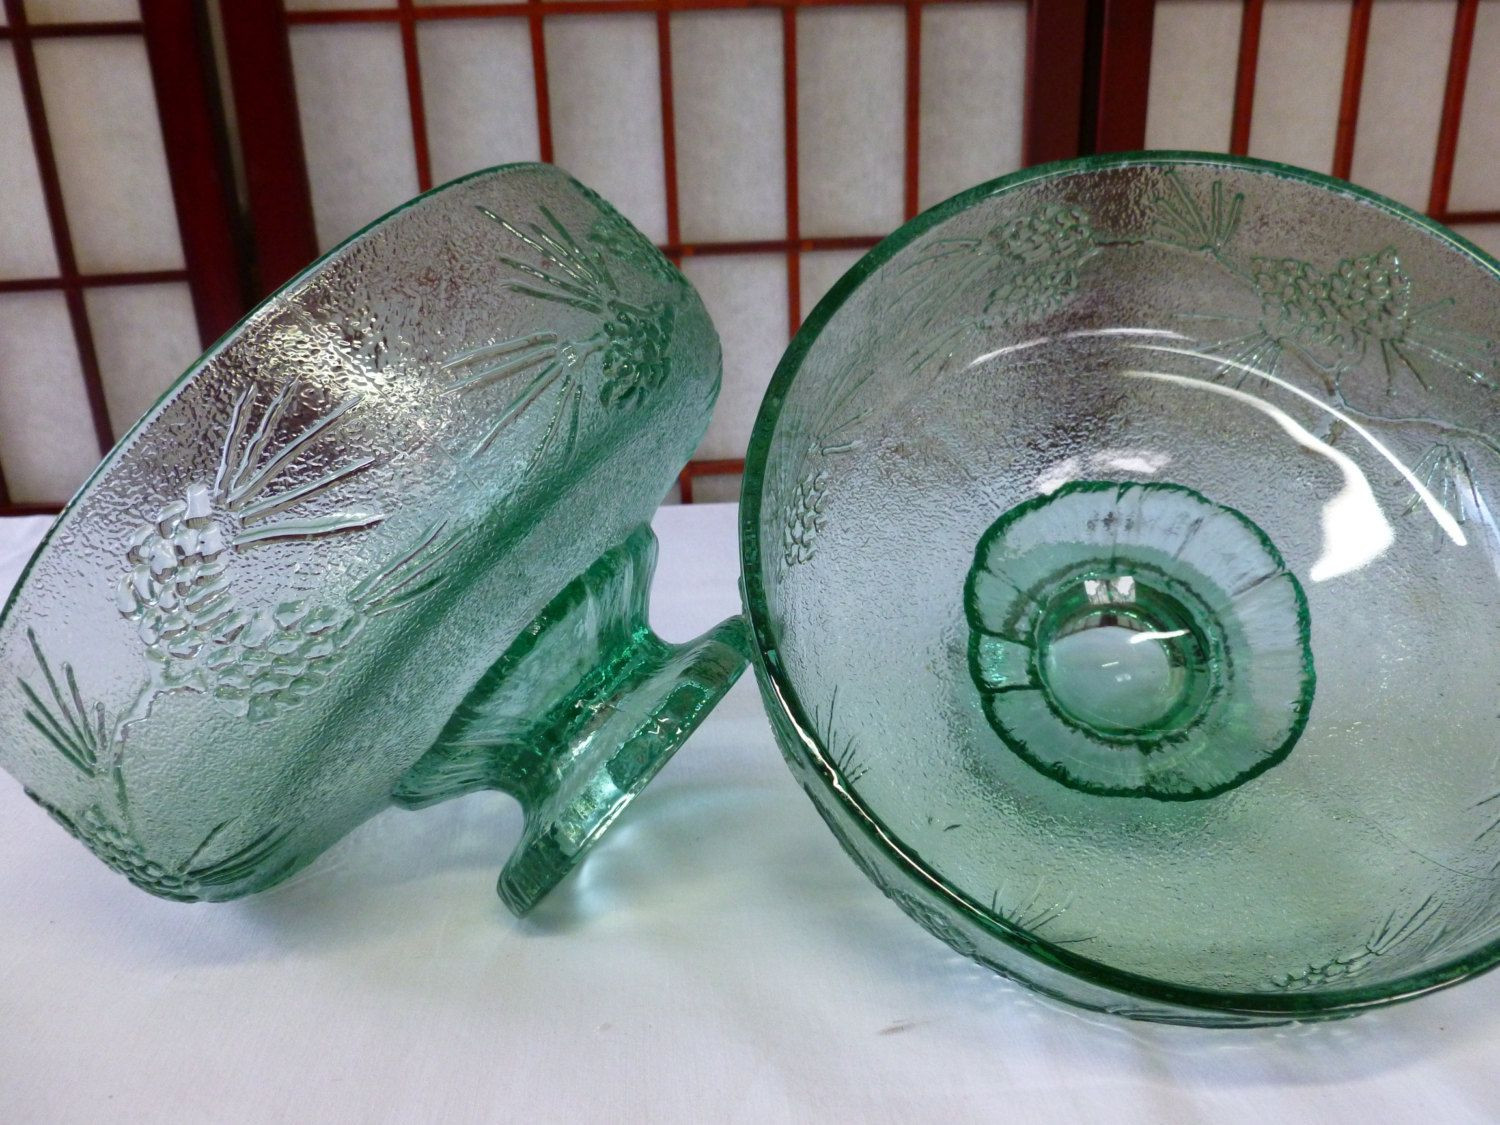 large footed crystal vase of indiana glass large pressed green glass footed compote fruit bowl throughout indiana glass large pressed green glass footed compote fruit bowl centerpiece or planter by indiana glass tiara ponderosa pine